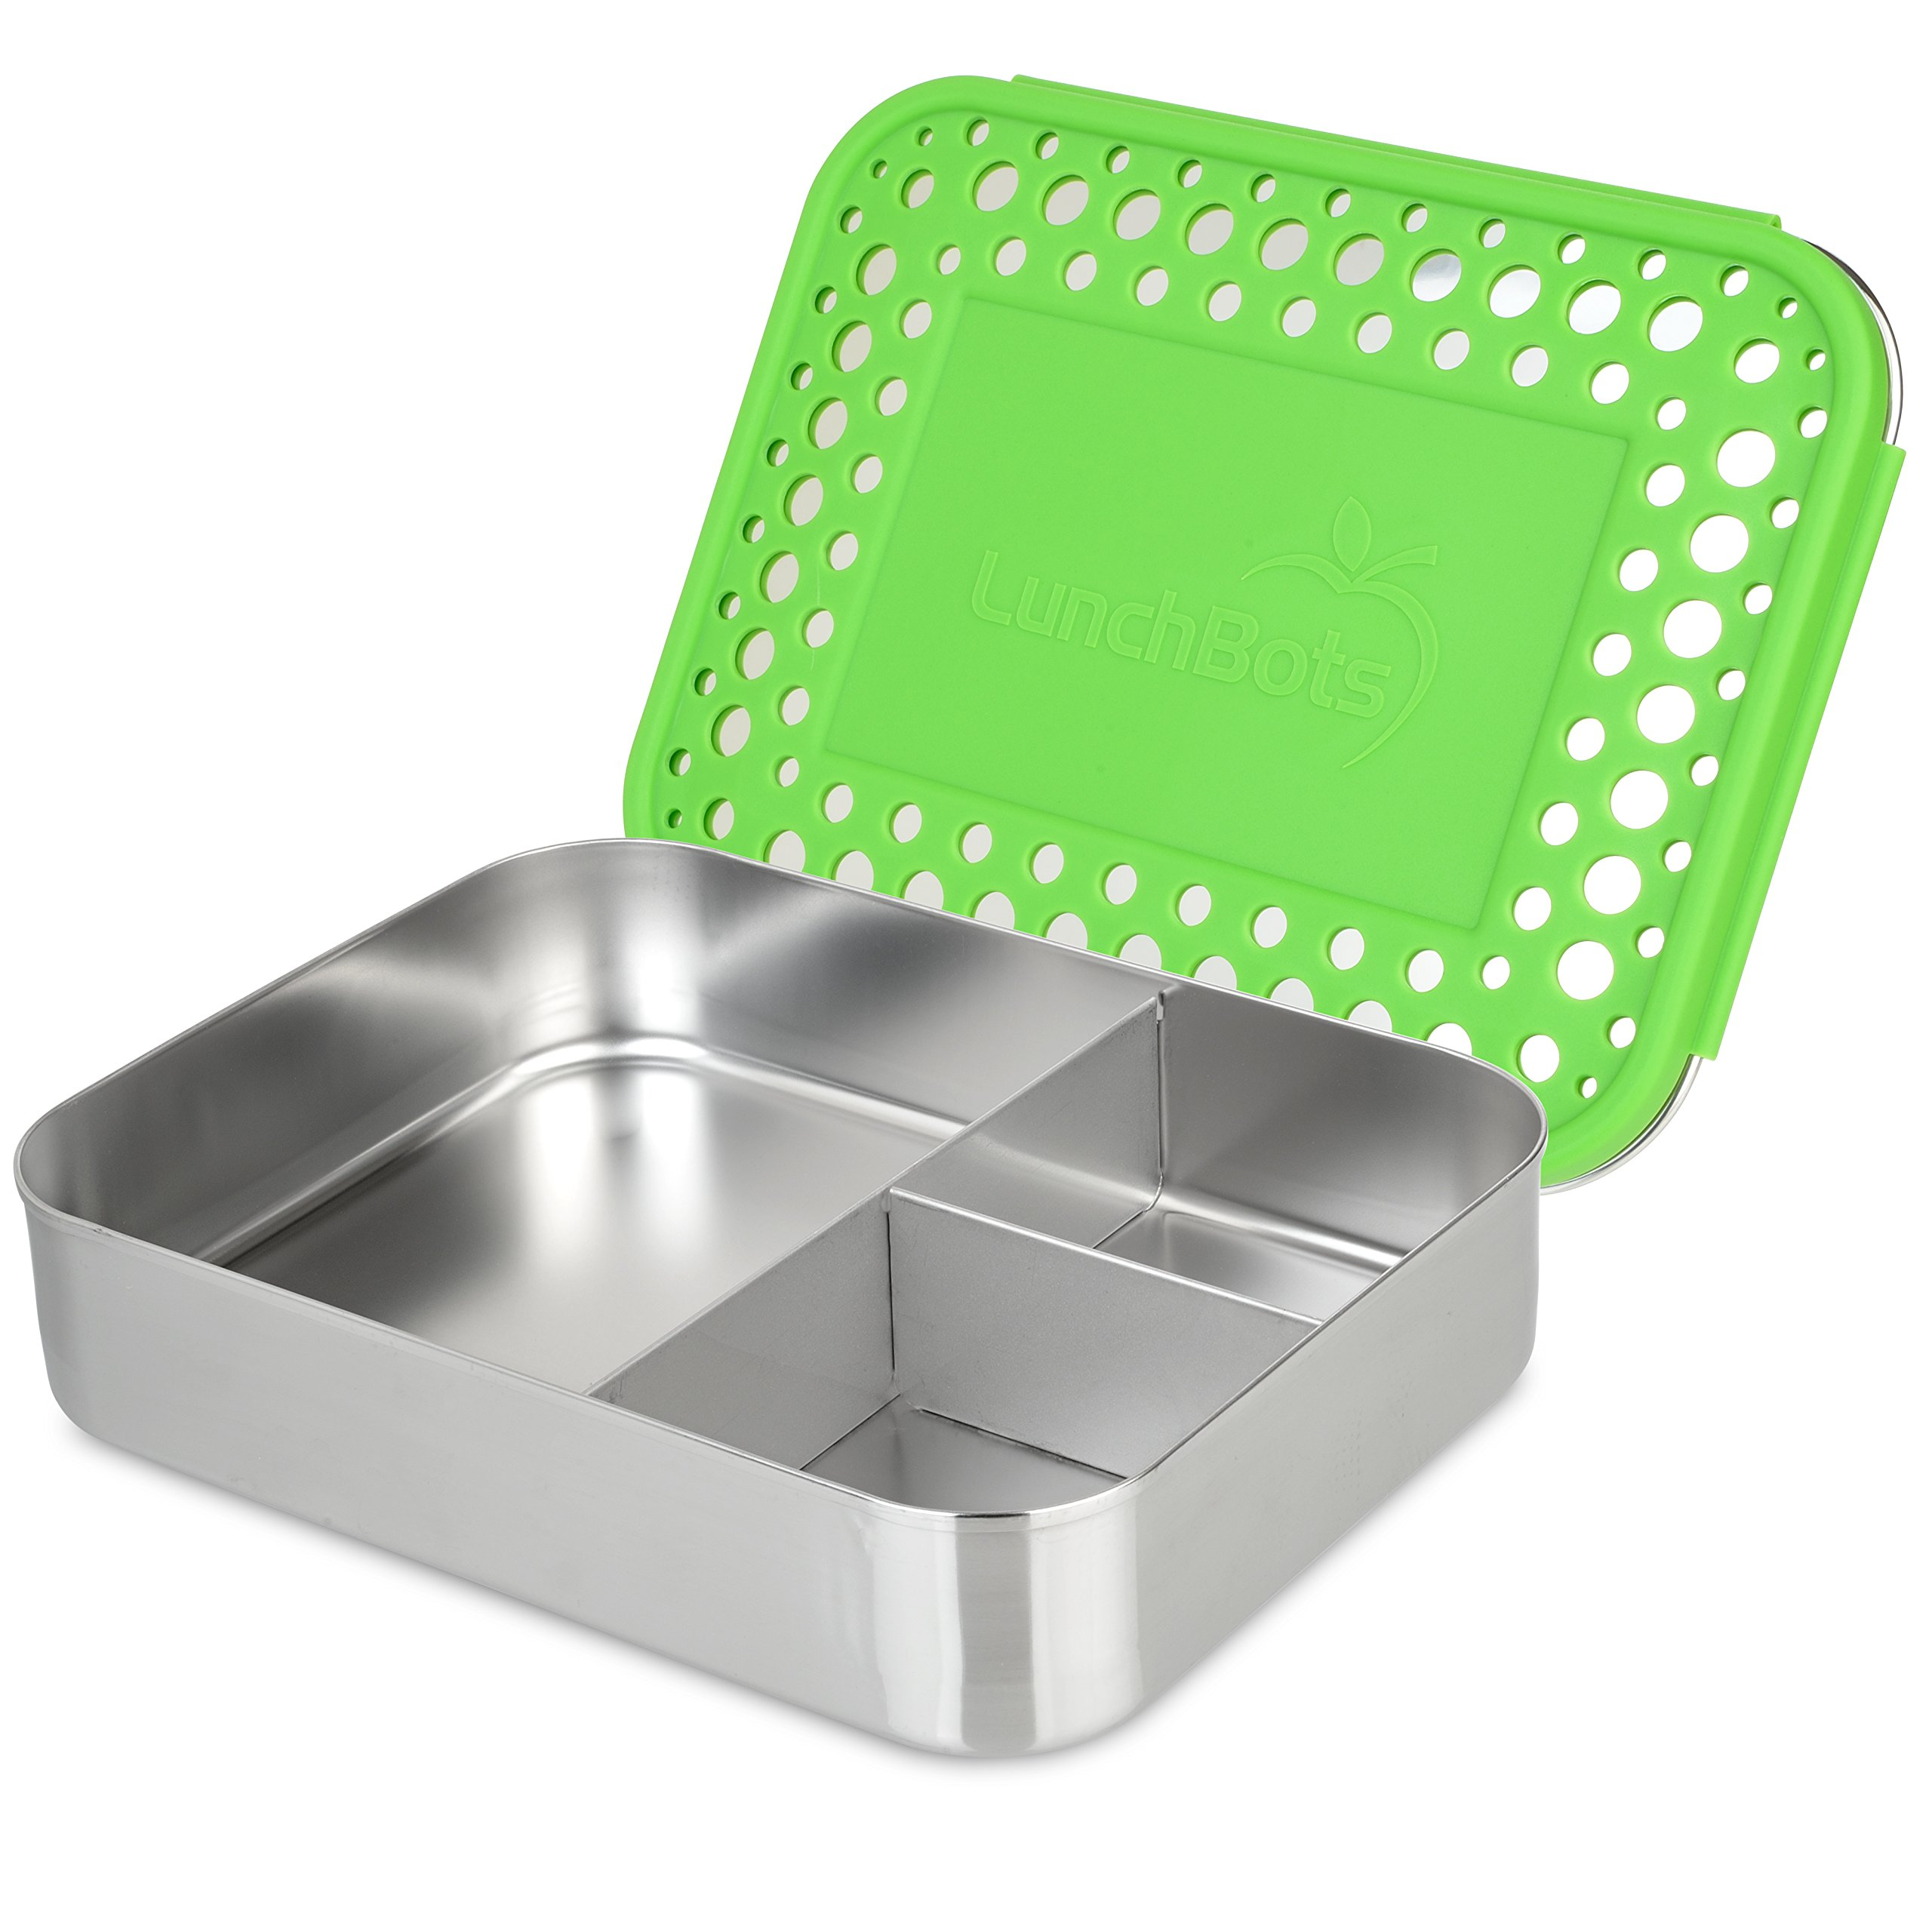 LUNCHBOTS Bento Trio Large Three Section Container Green Dots, 1 Each